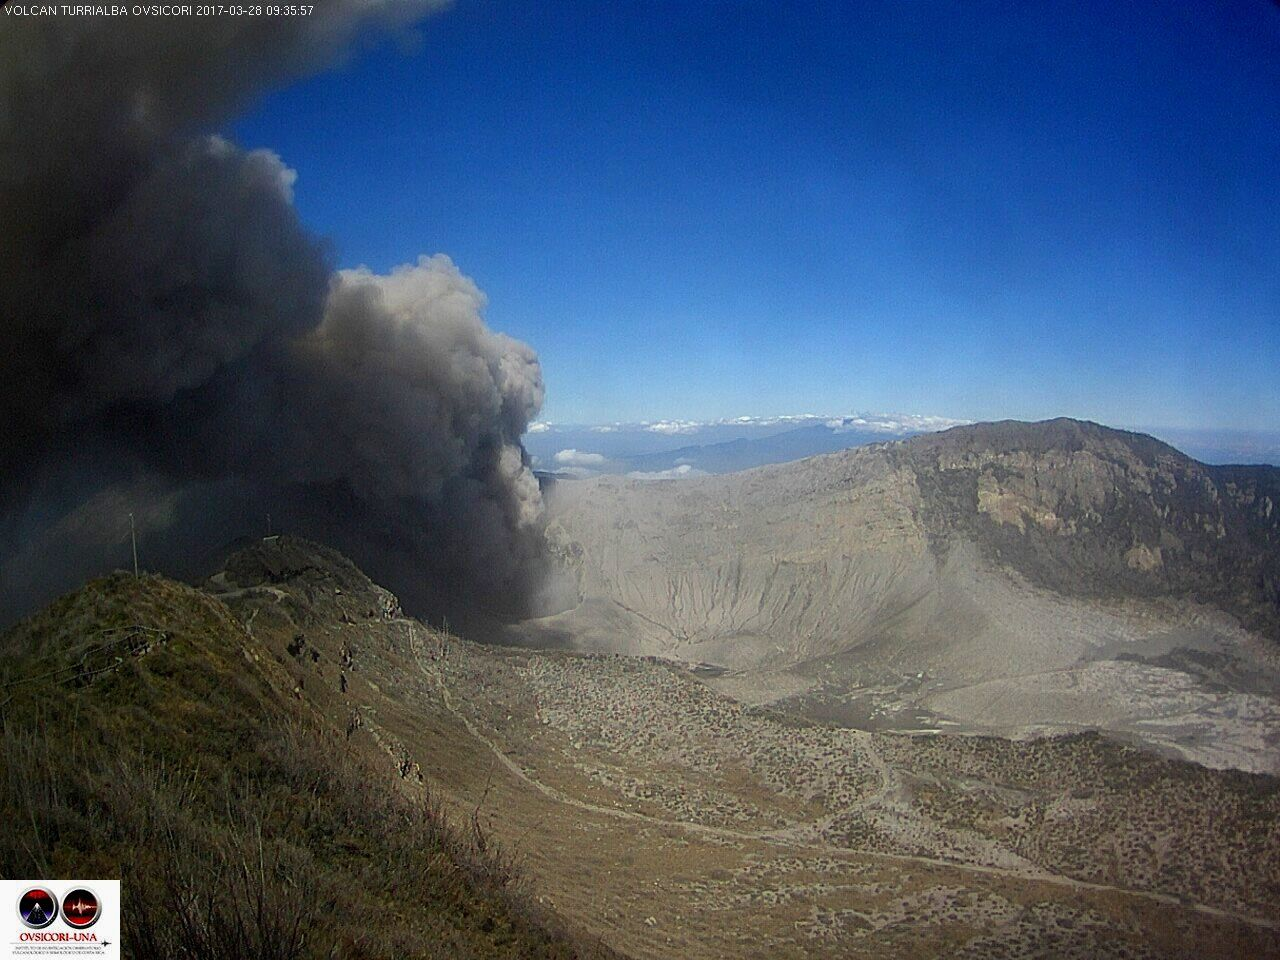 Turrialba - activity of 28.03.2017, at 8h07 and 9h36 respectively - webcam Ovsicori